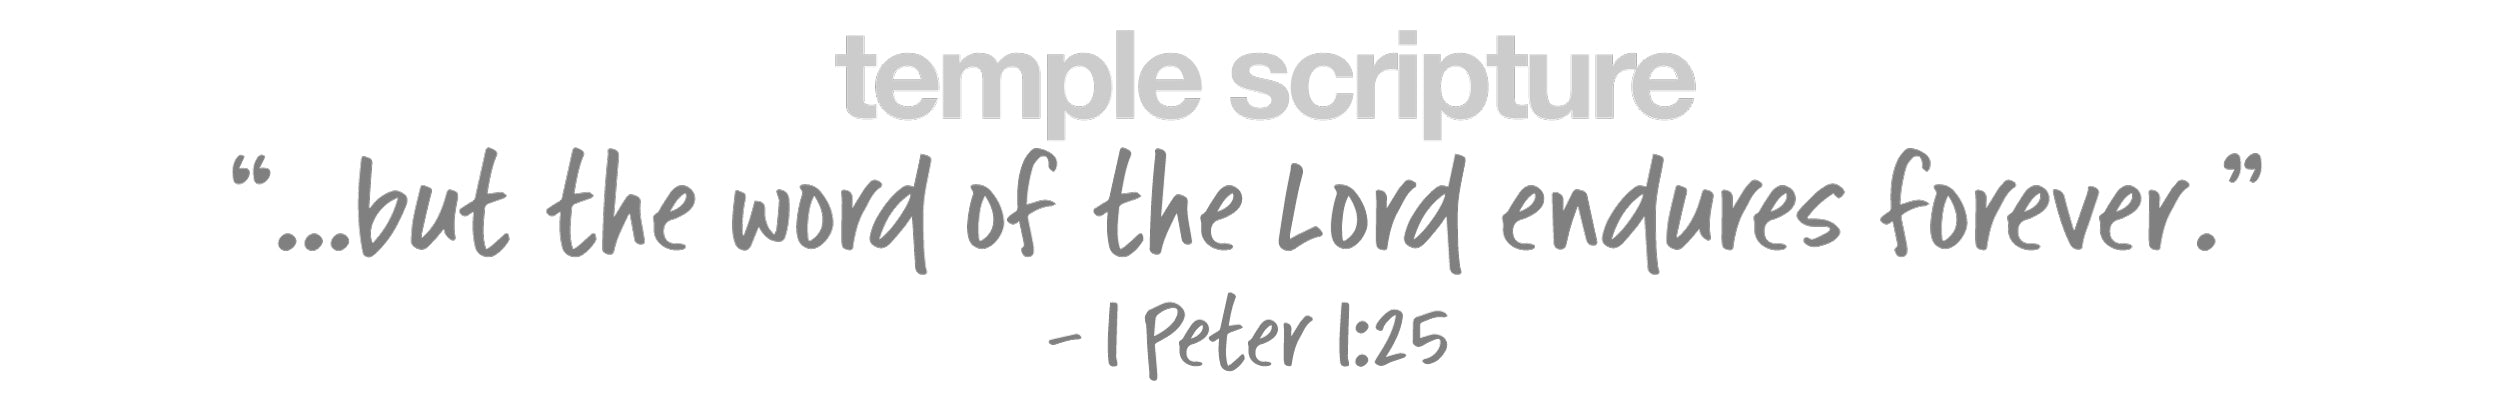 ...but the word of the Lord endures forever, -1 Peter 1:25